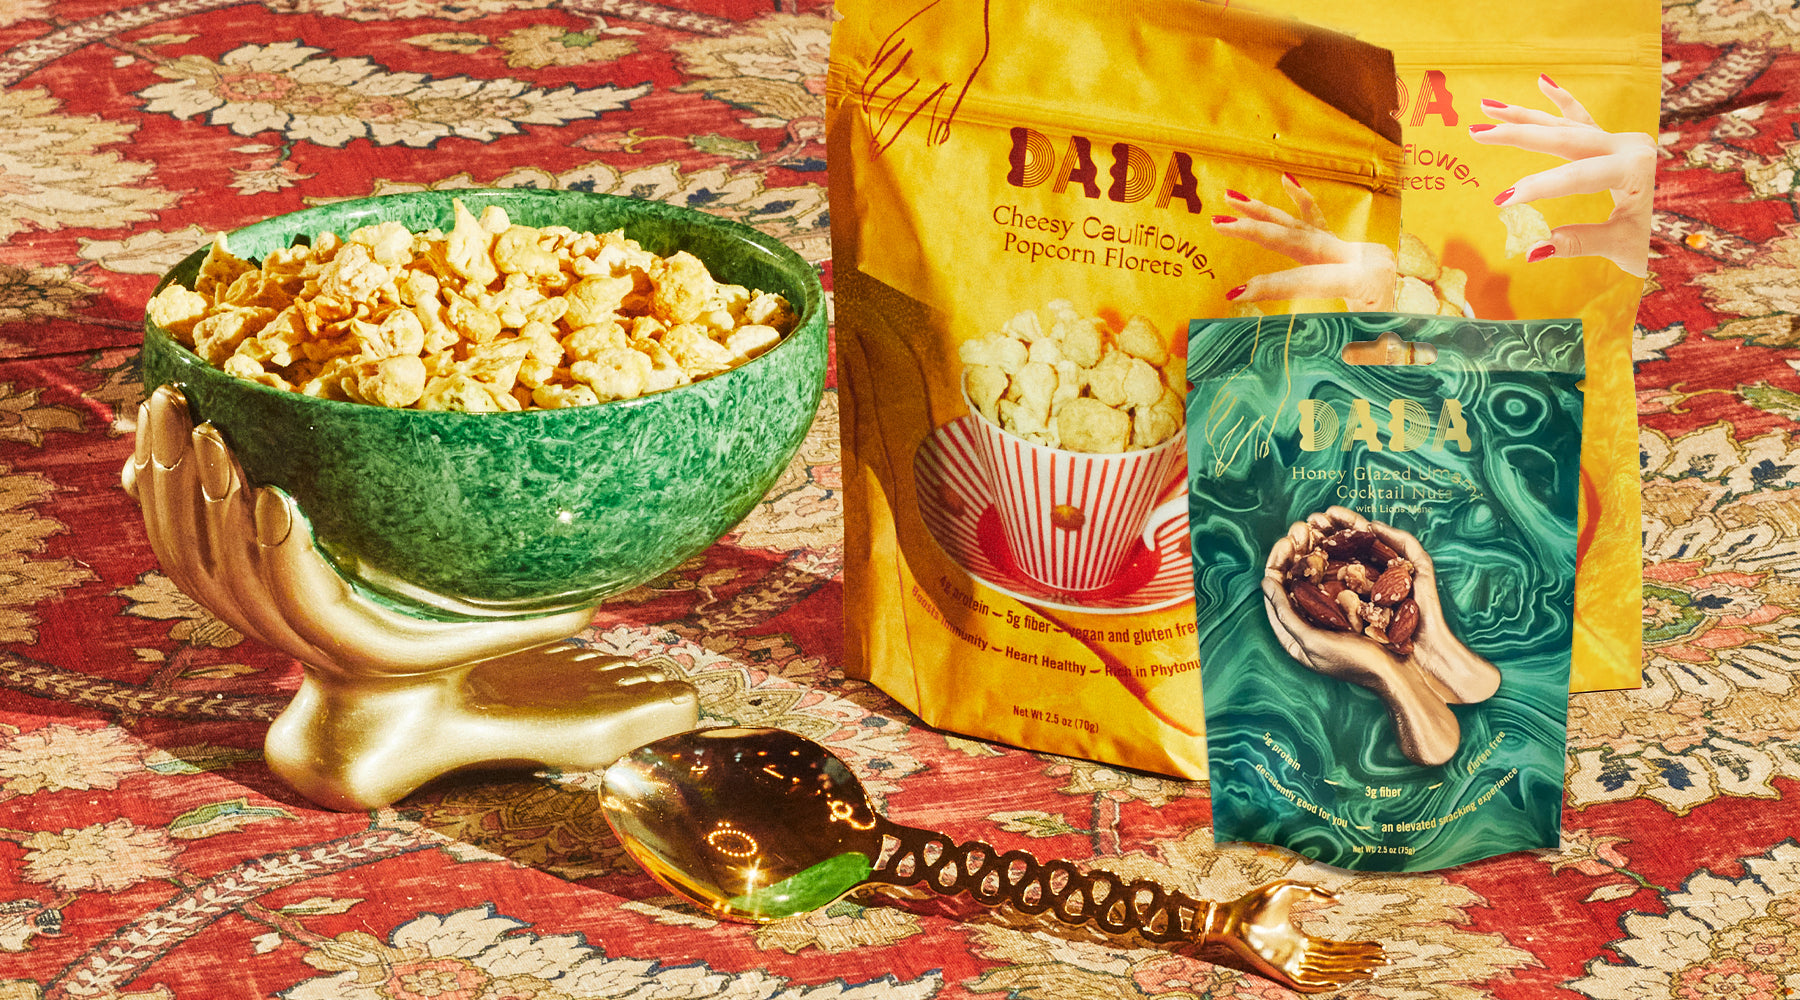 cauliflower, nuts, cocktail, snacks, bowl, spoon, hand, popcorn, dada daily, make decadence a ritual, elevate your snacking moment